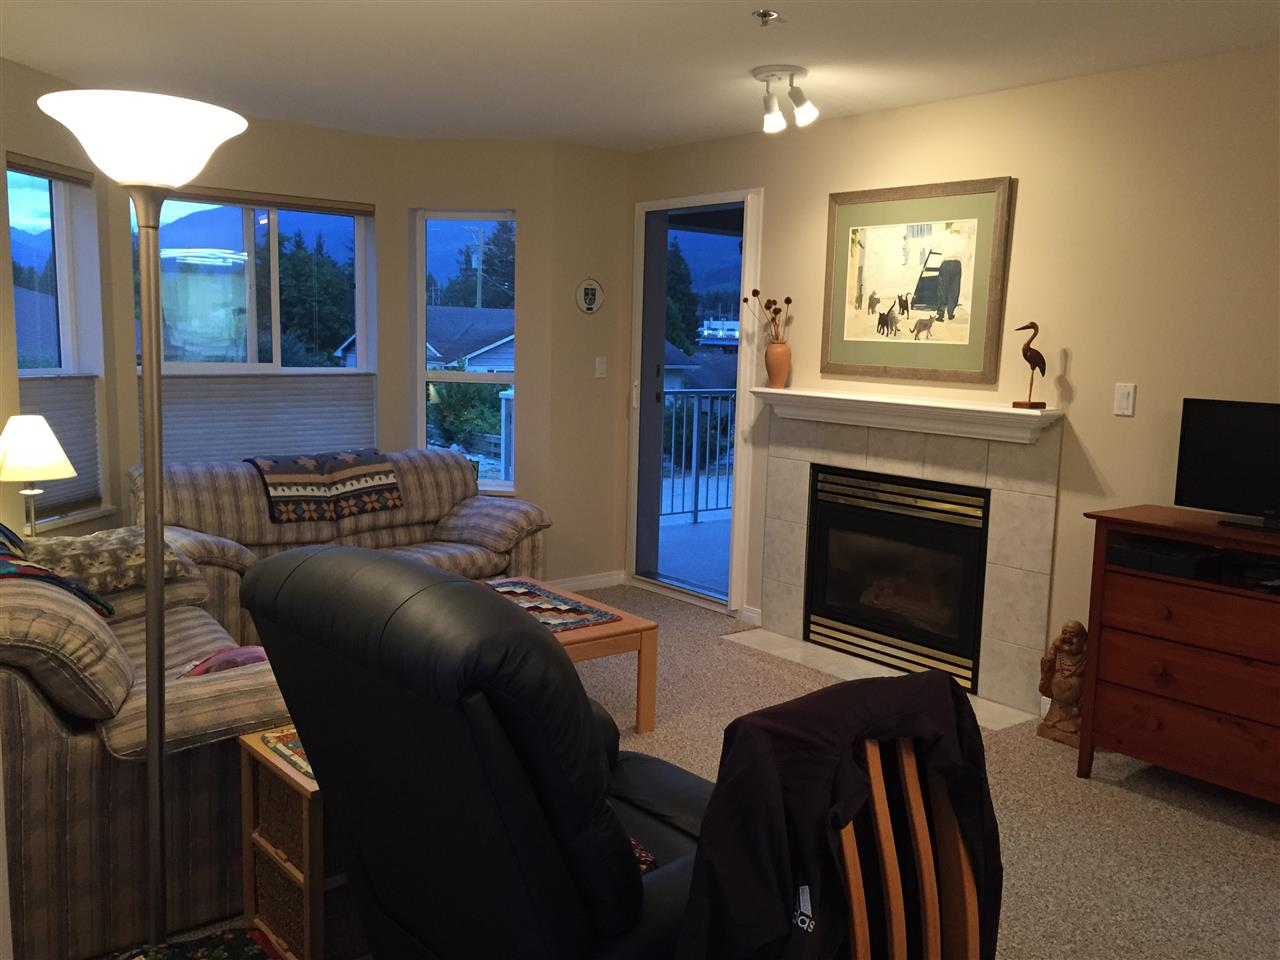 Photo 4: 207 5711 MERMAID STREET in Sechelt: Sechelt District Condo for sale (Sunshine Coast)  : MLS® # R2104837